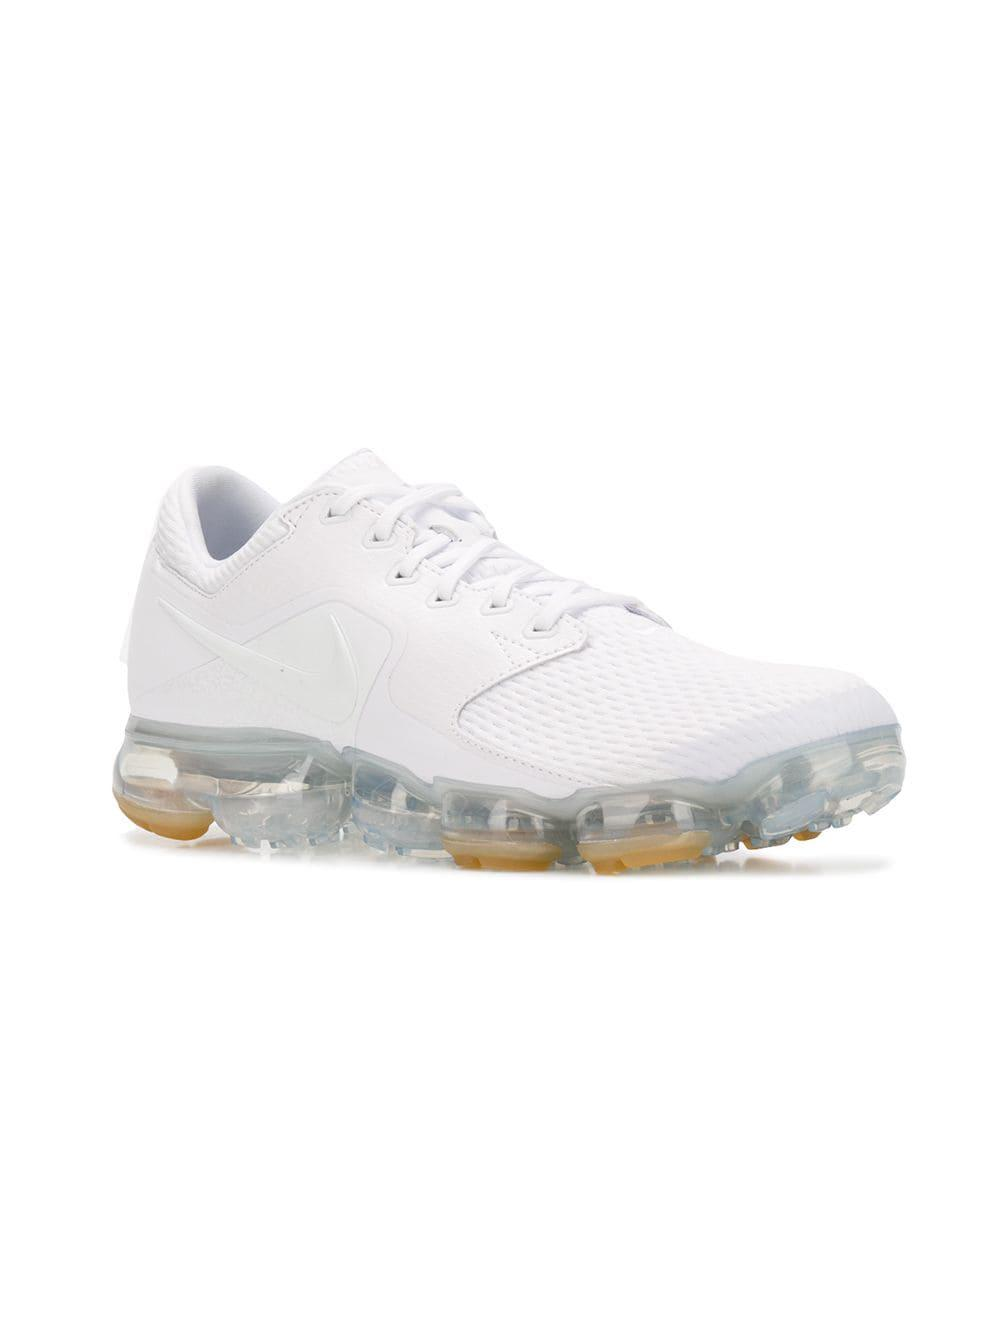 3111245f4ecb2 Nike Air Vapormax Sneakers in White for Men - Lyst